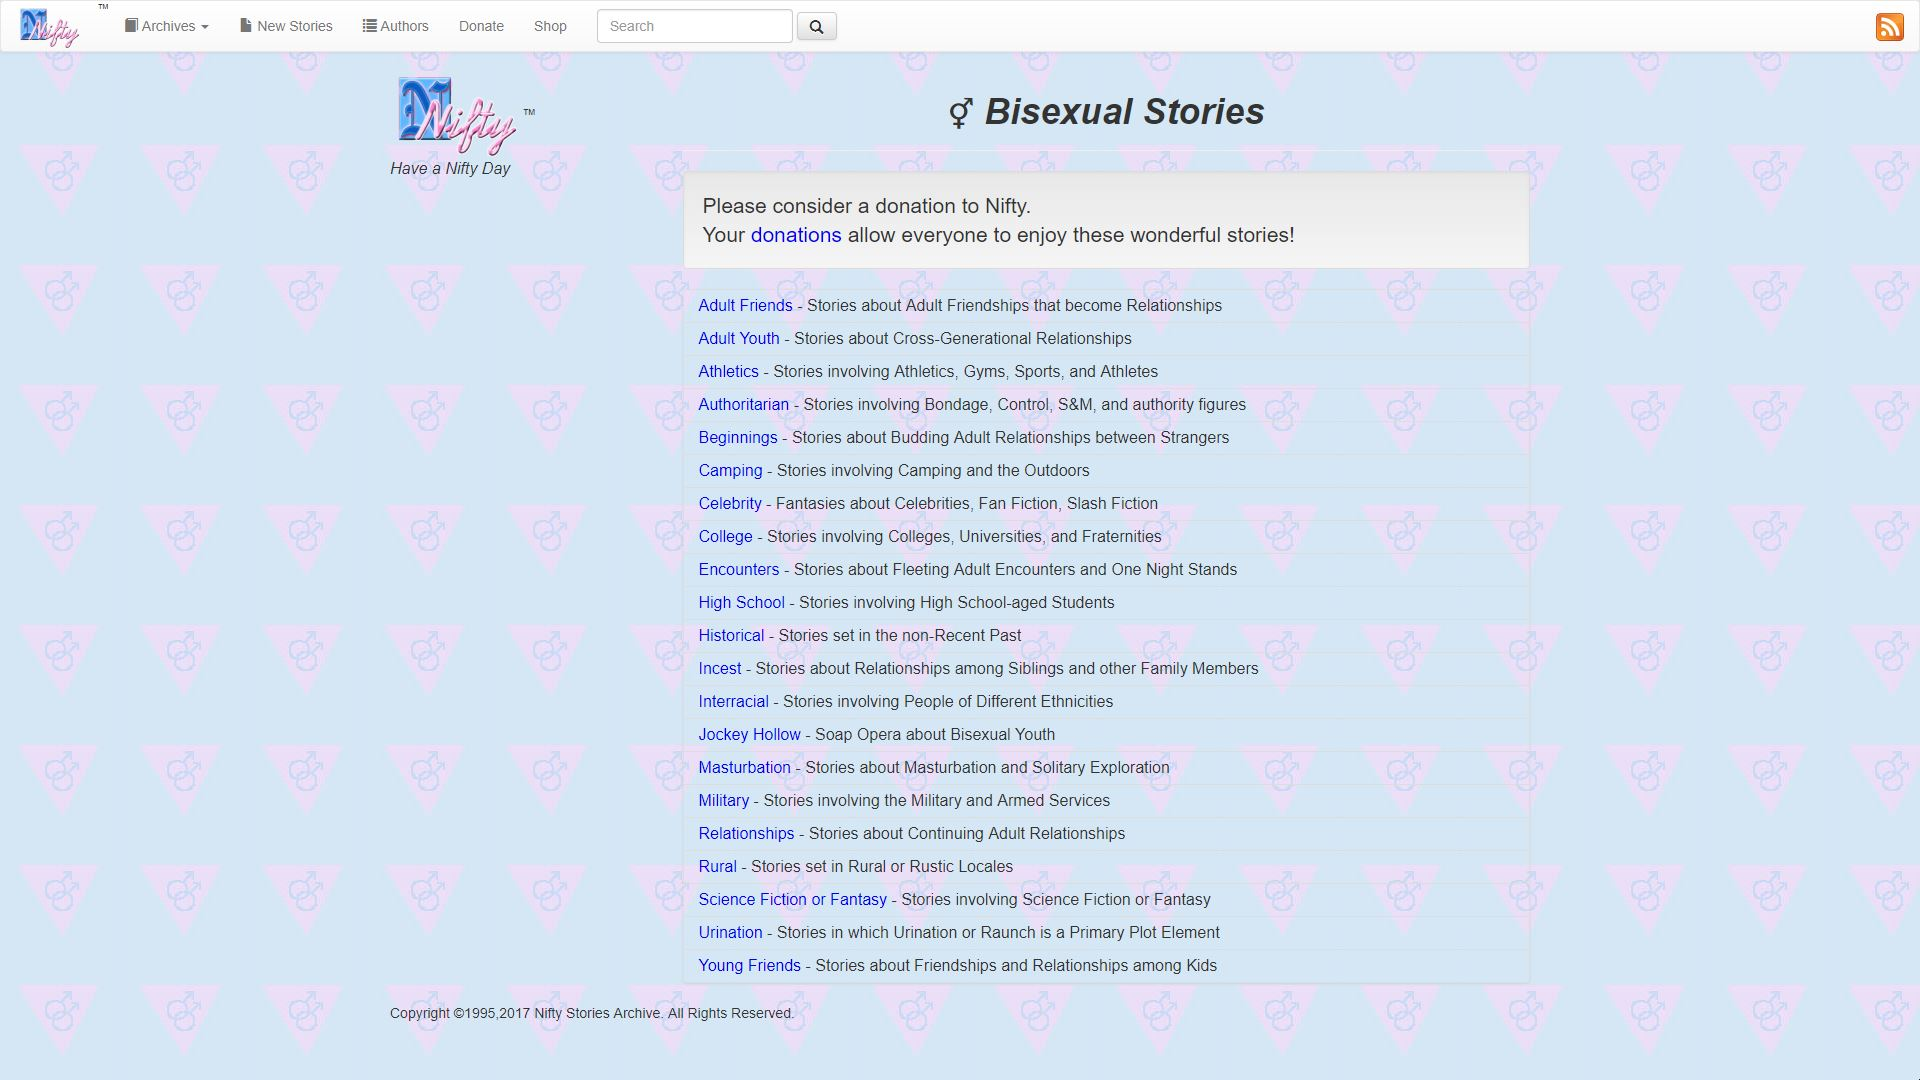 Nifty Bisexual Stories